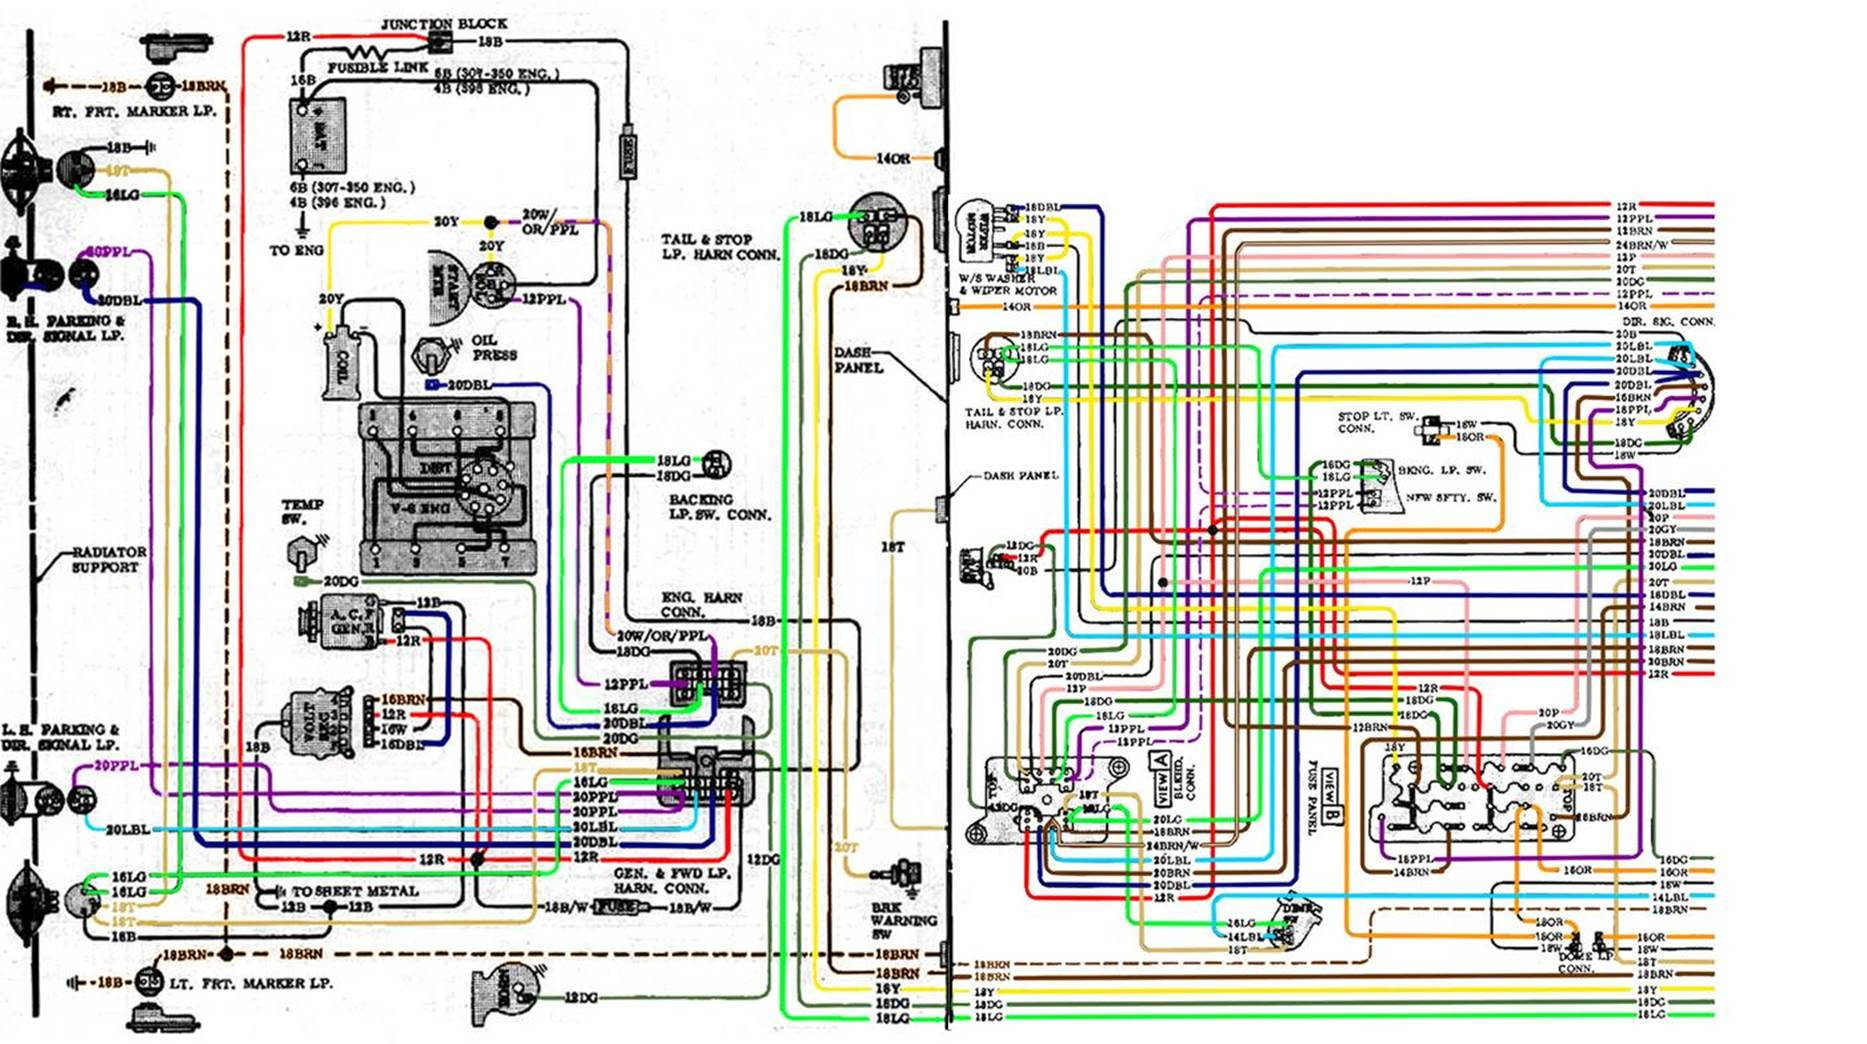 66 c10 wiring diagram circuit diagram template 1969 Thunderbird Black wiring diagram for a 1969 chevrolet c10 wiring diagram detailedwiring diagram for a 1969 chevrolet c10